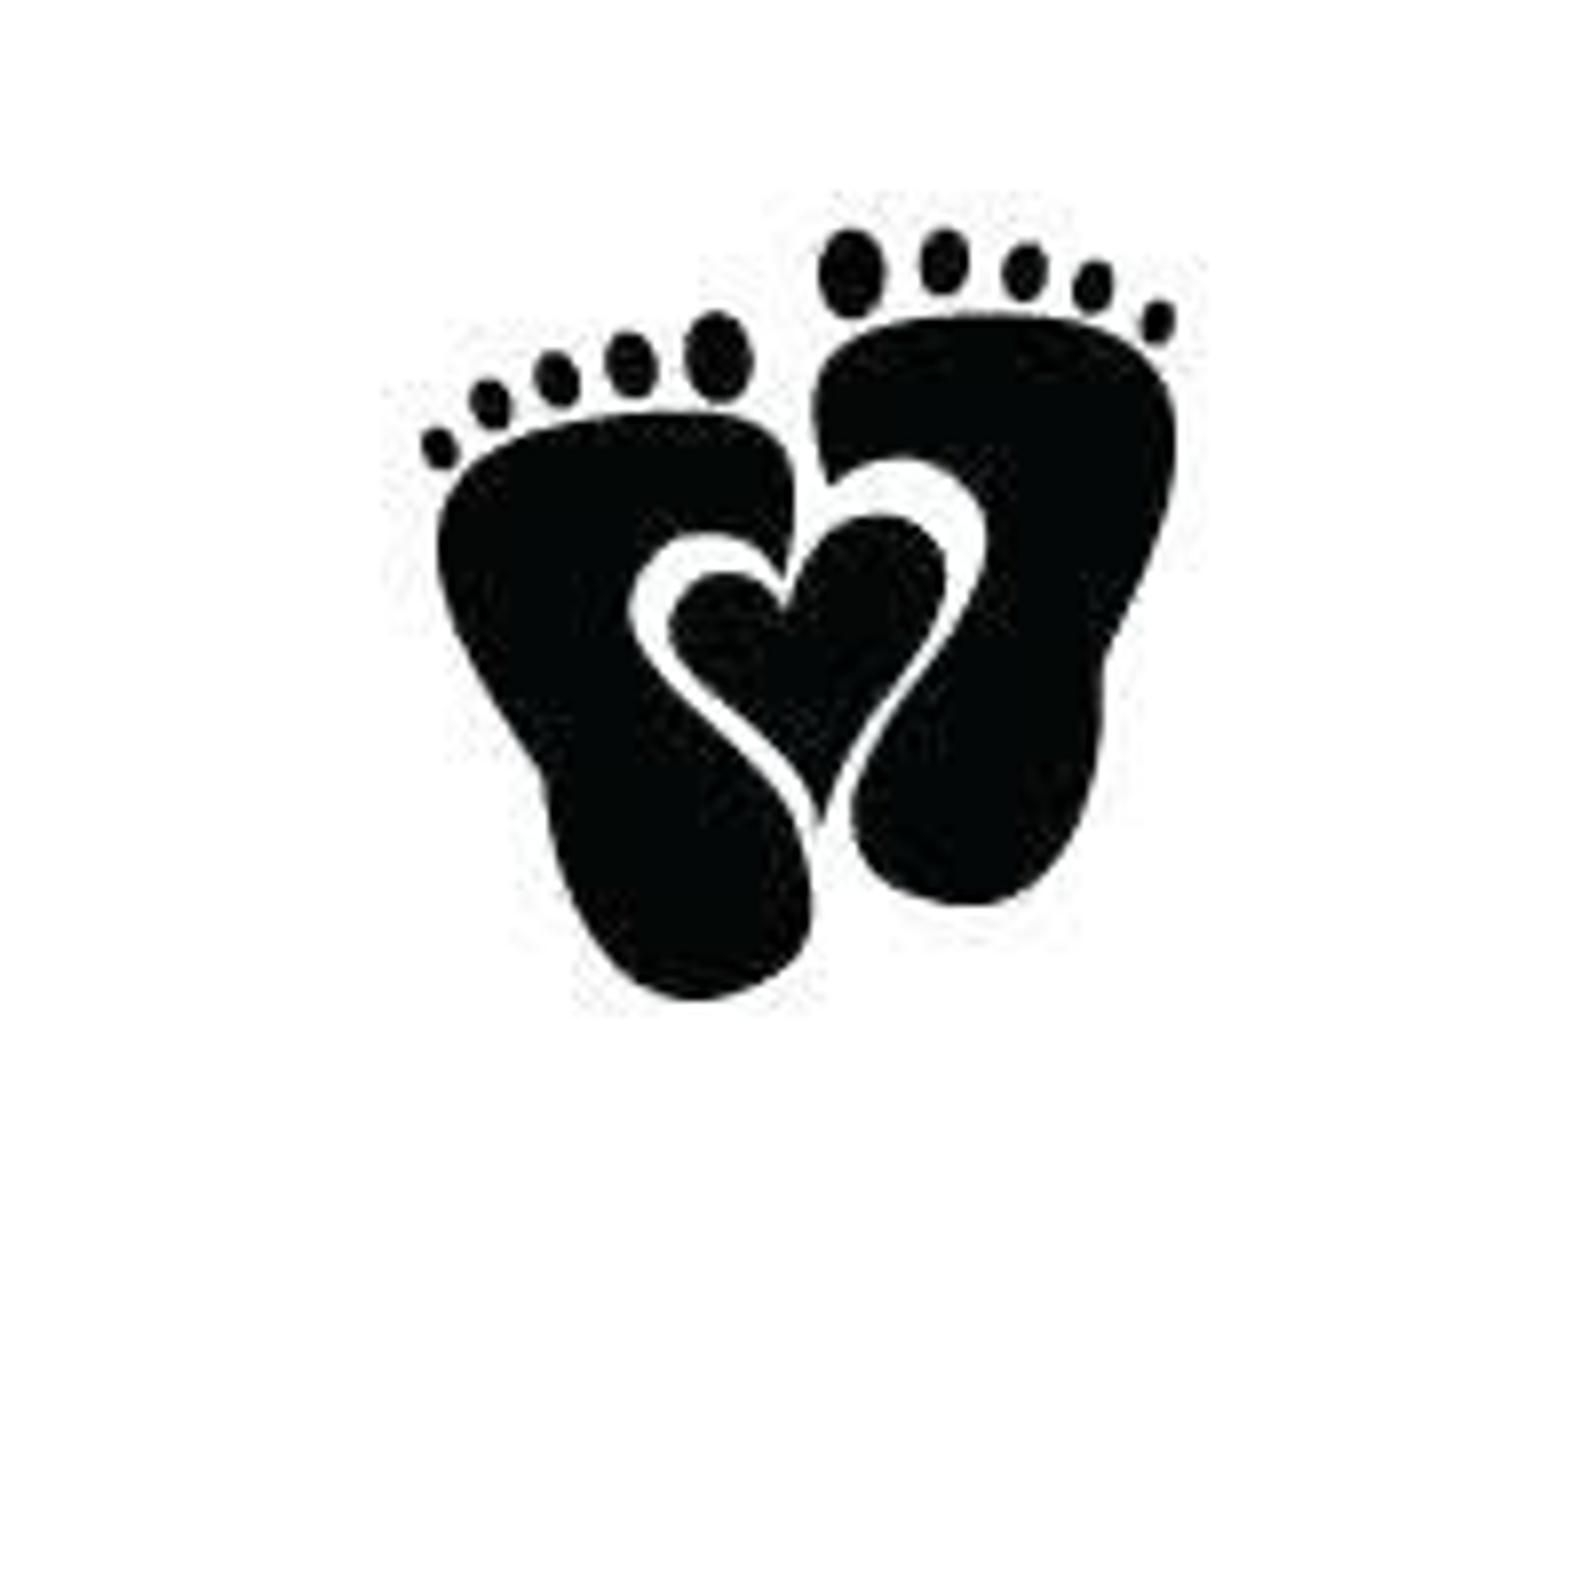 Baby Feet Heart Digital File Svg Png Jpg Cricut Etsy In 2020 Creative Baby Shower Baby Feet Baby Shower Gift Bags